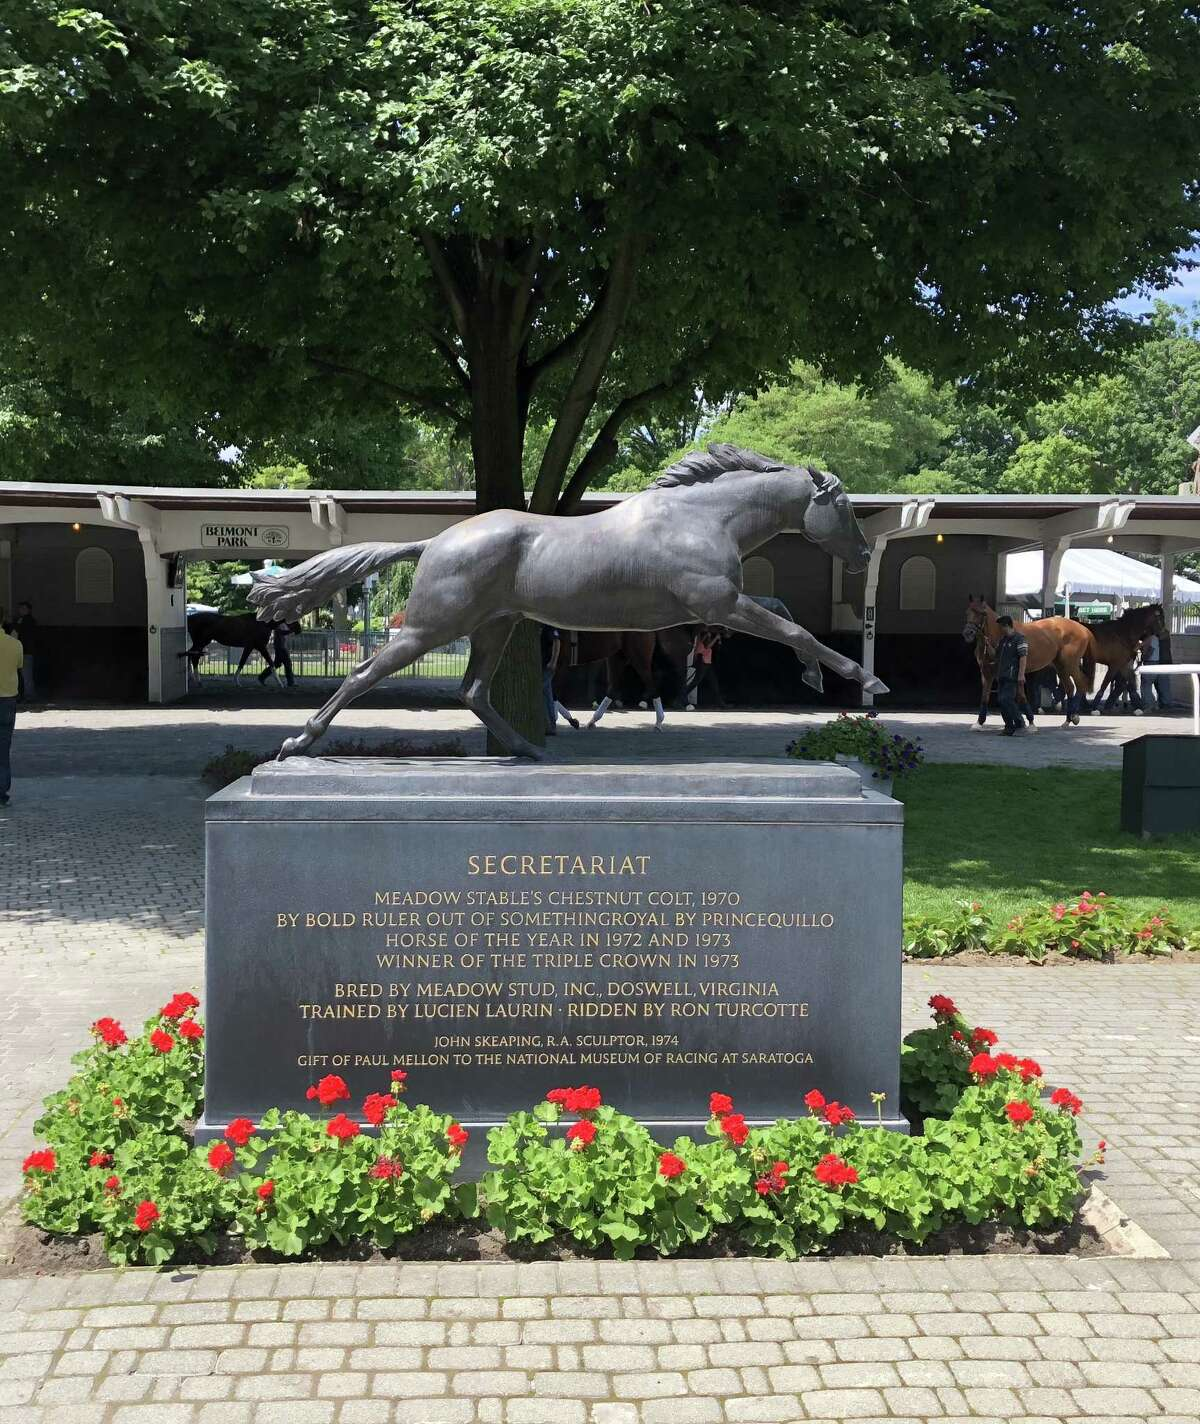 This is the statue that watches over the horses in the Belmont paddock day in and day out. The great Secretariat, who won the 1973 Triple Crown, is the standard for every horse that runs, especially those that compete in the Classic races. Remember his 1973 Belmont when he won by a still-record 31 lengths? The Belmont Stakes will be run for the 150th time on Saturday with the unbeaten Justify looking to gain entrance to the exclusive Triple Crown club. (Tim Wilkin / Times Union)